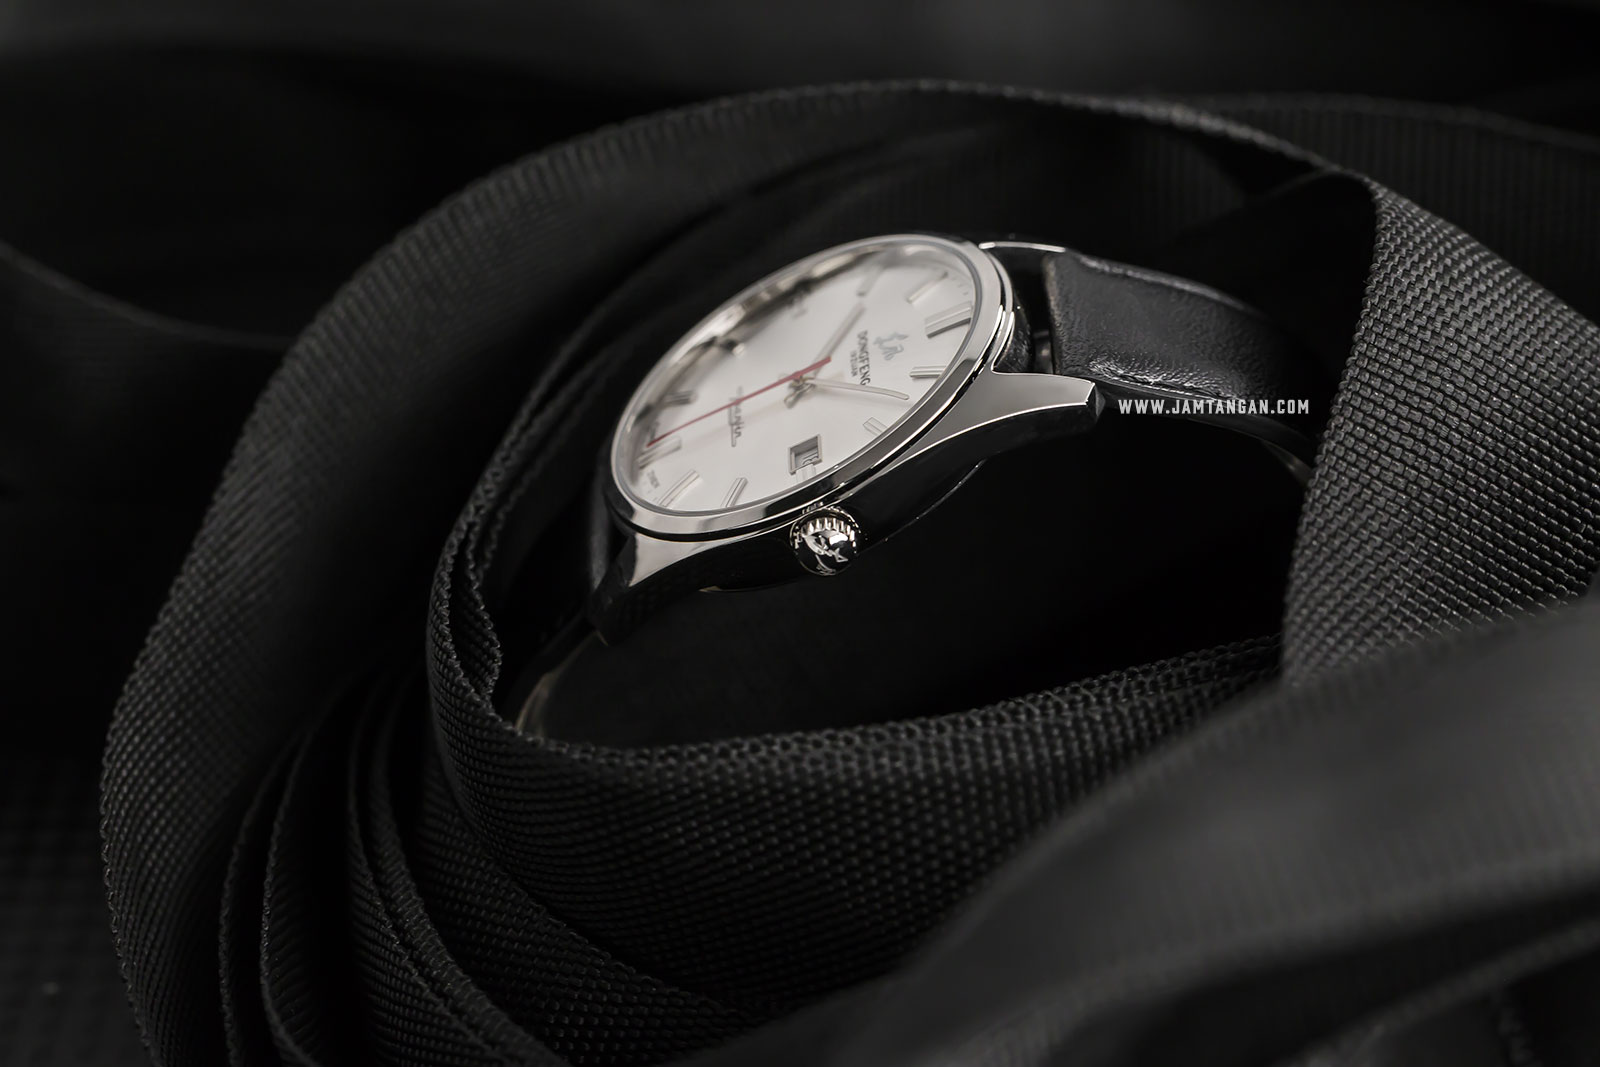 Seagull DONGFENG-FKDF Dongfeng Re-issue Seagull Automatic Mechanical White Dial Black Leather Strap Machtwatch